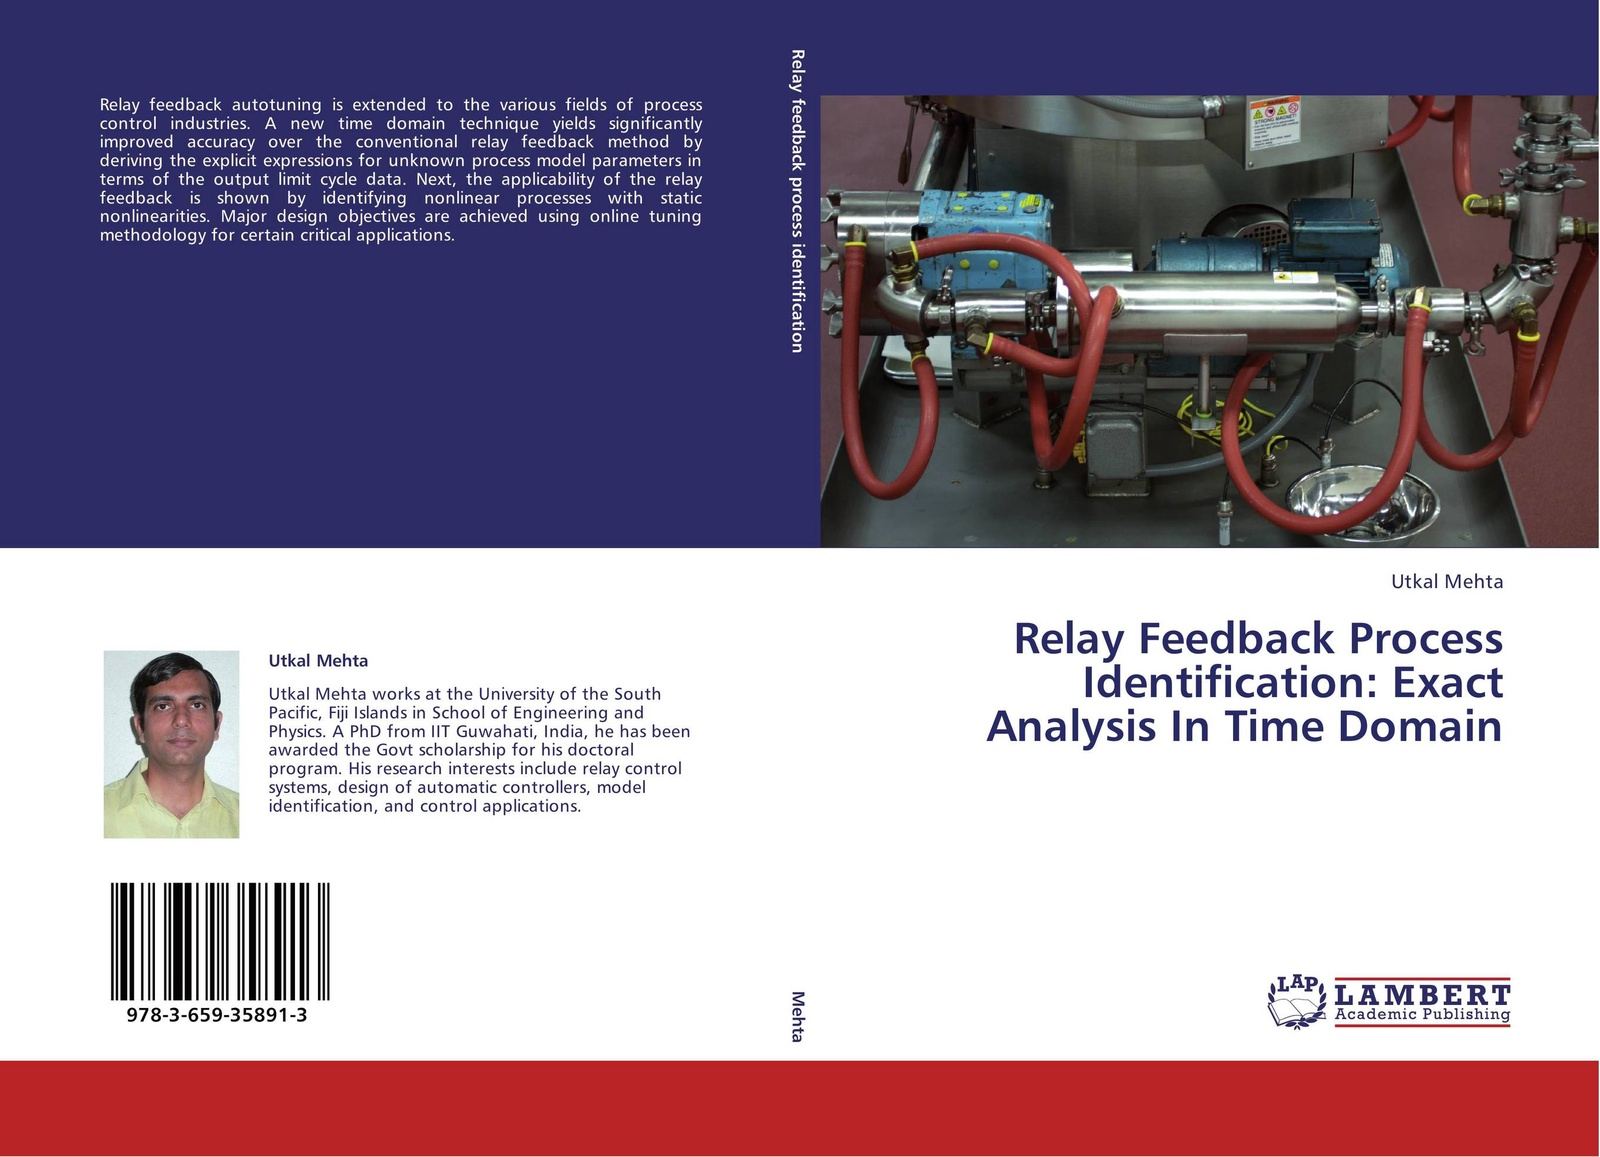 Utkal Mehta Relay Feedback Process Identification: Exact Analysis In Time Domain digital time relay jss20 ae accuracy to the millisecond time ms